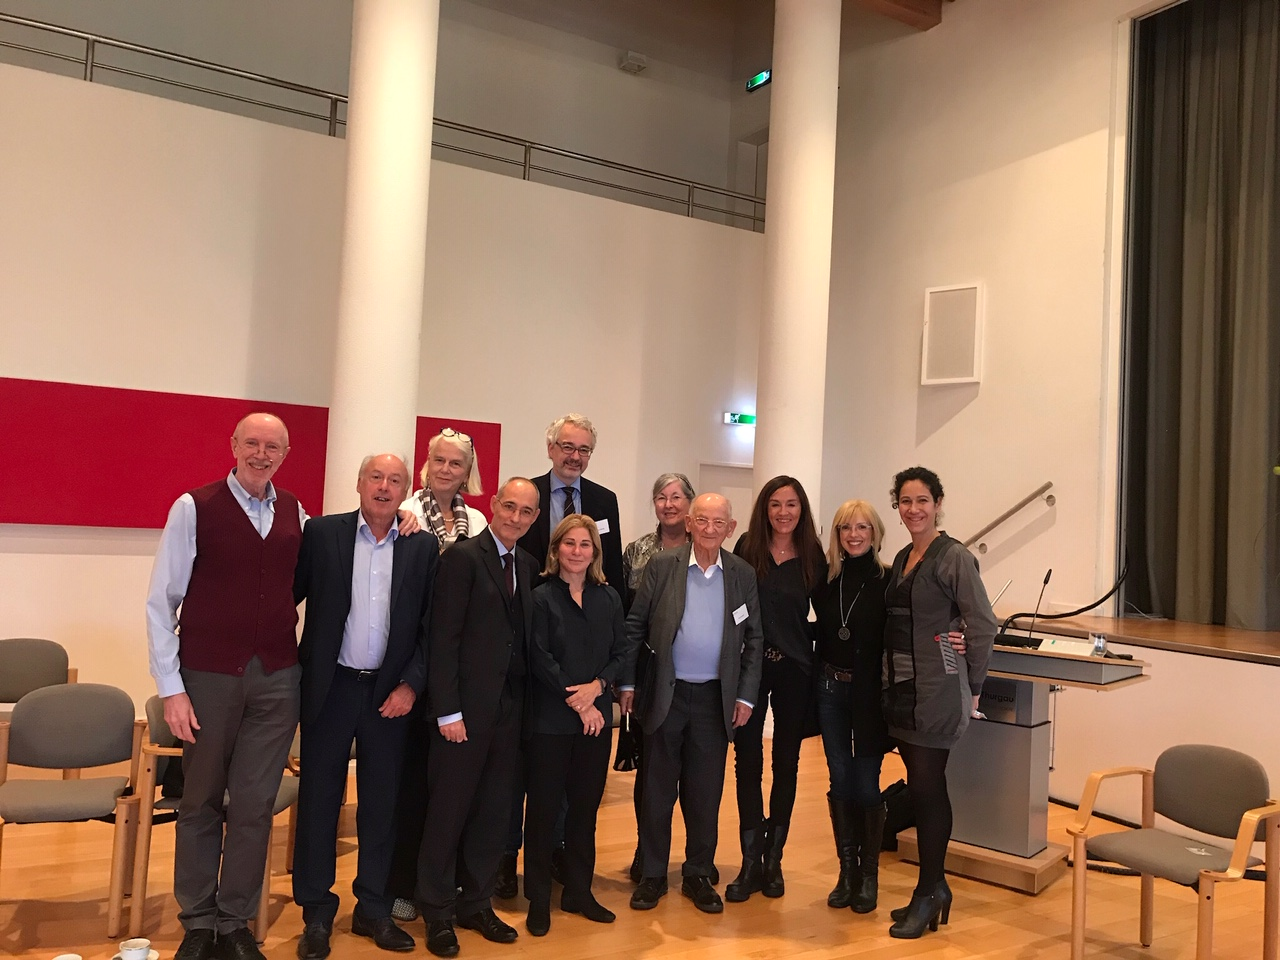 1st ISTFP Supervisor Meeting In Münsterlingen, Switzerland